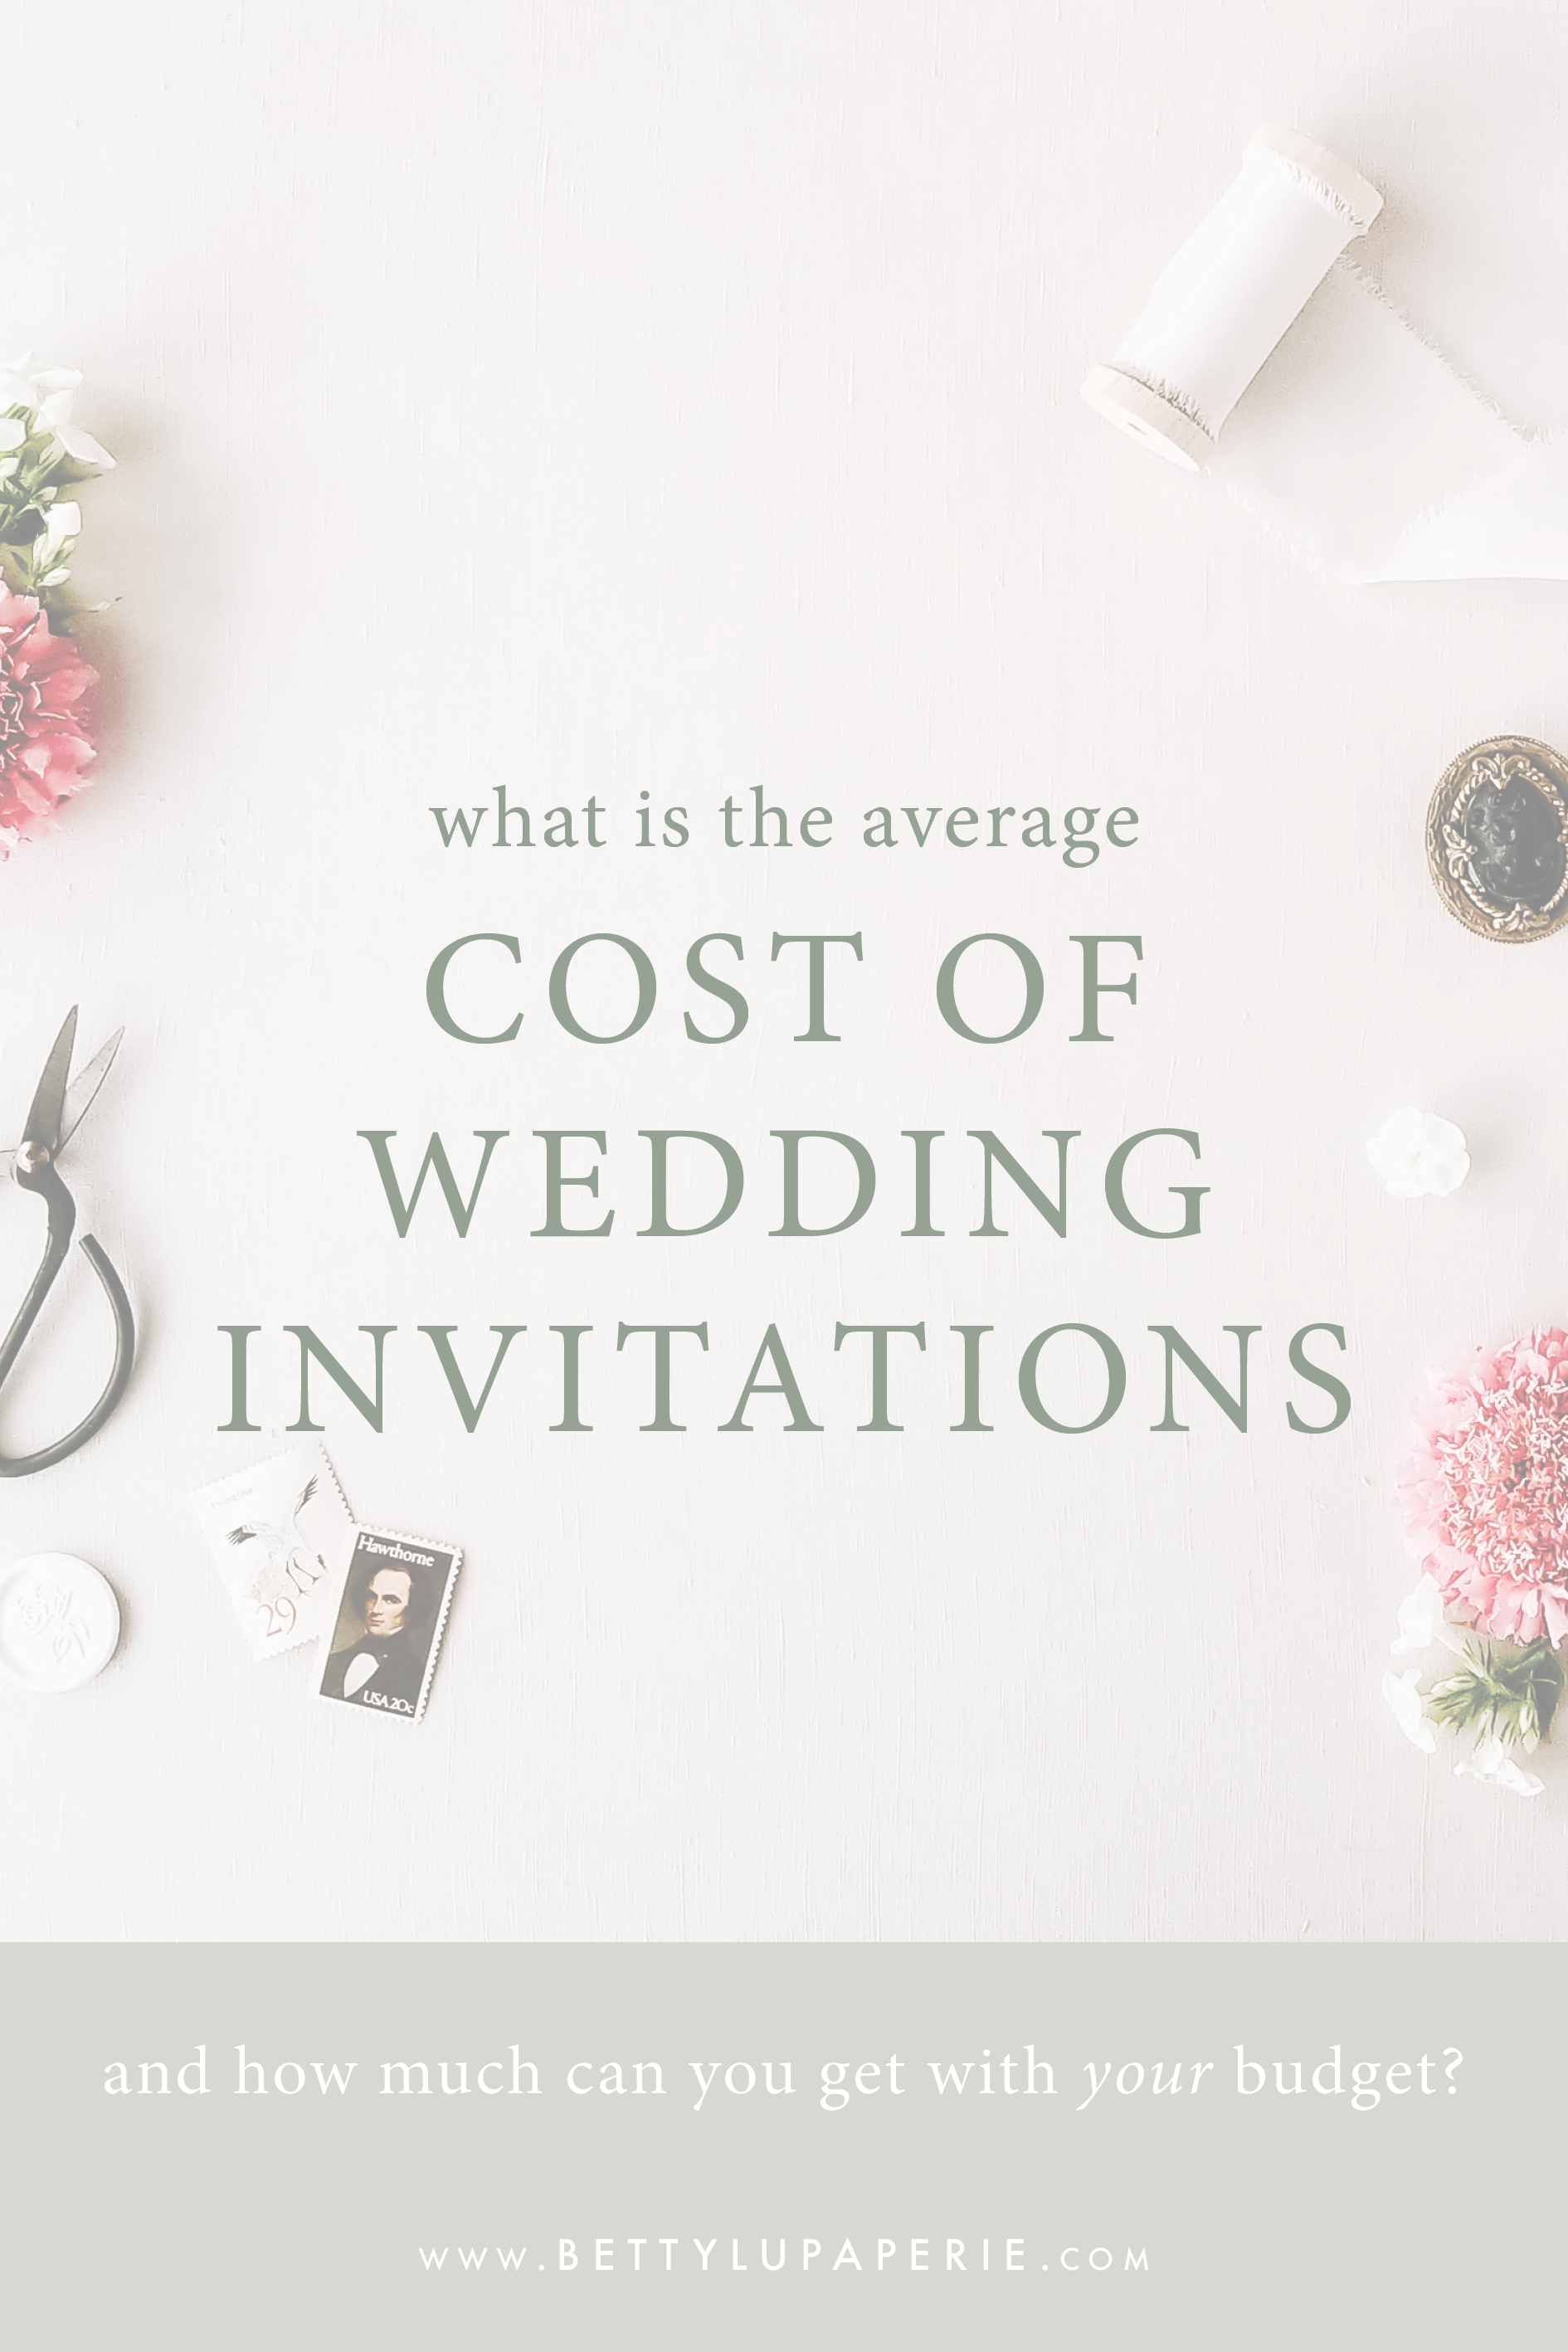 What Is The Average Cost Of Wedding Invitations Floral Wedding Invitations From Betty Lu Paperie Wedding Costs Floral Wedding Invitations Wedding Invitation Wording Examples